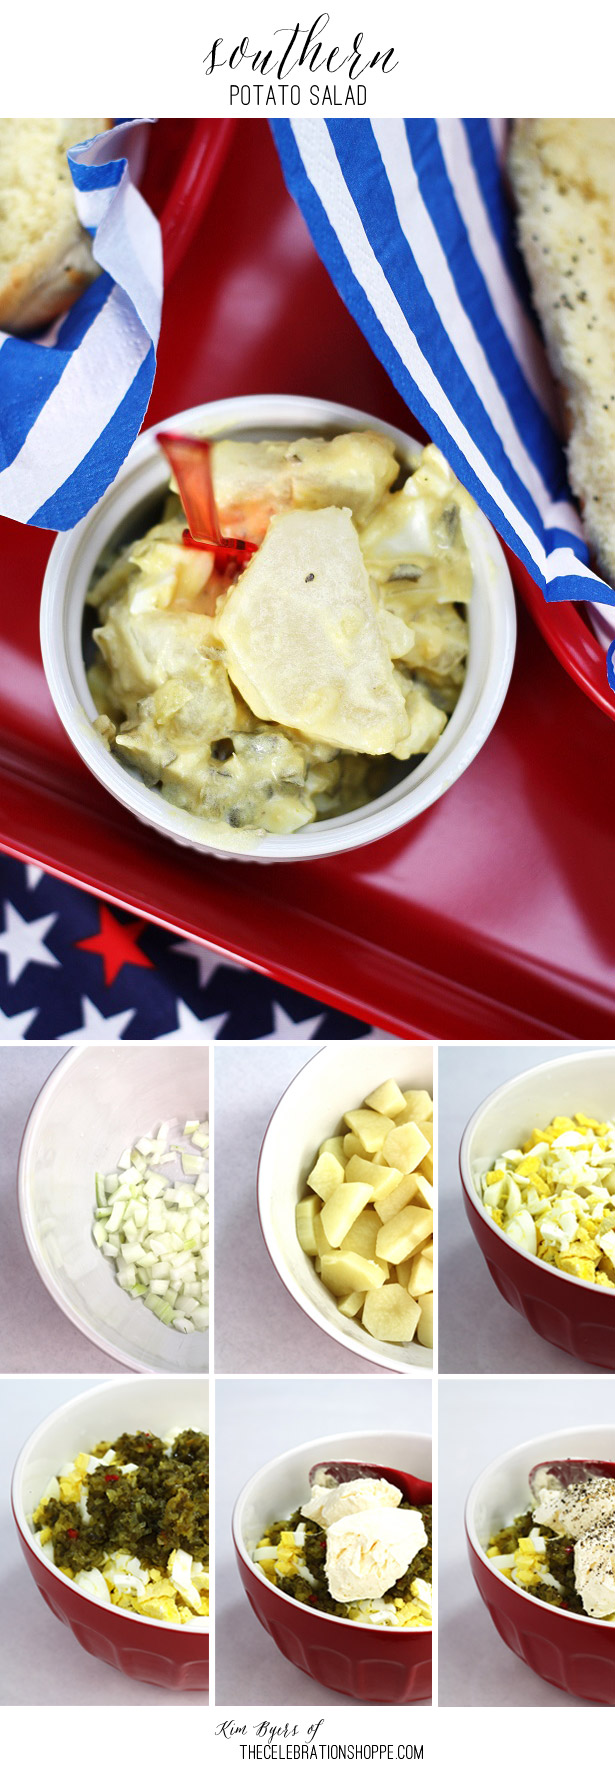 Southern Potato Salad Recipe | Kim Byers, TheCelebrationShoppe.com